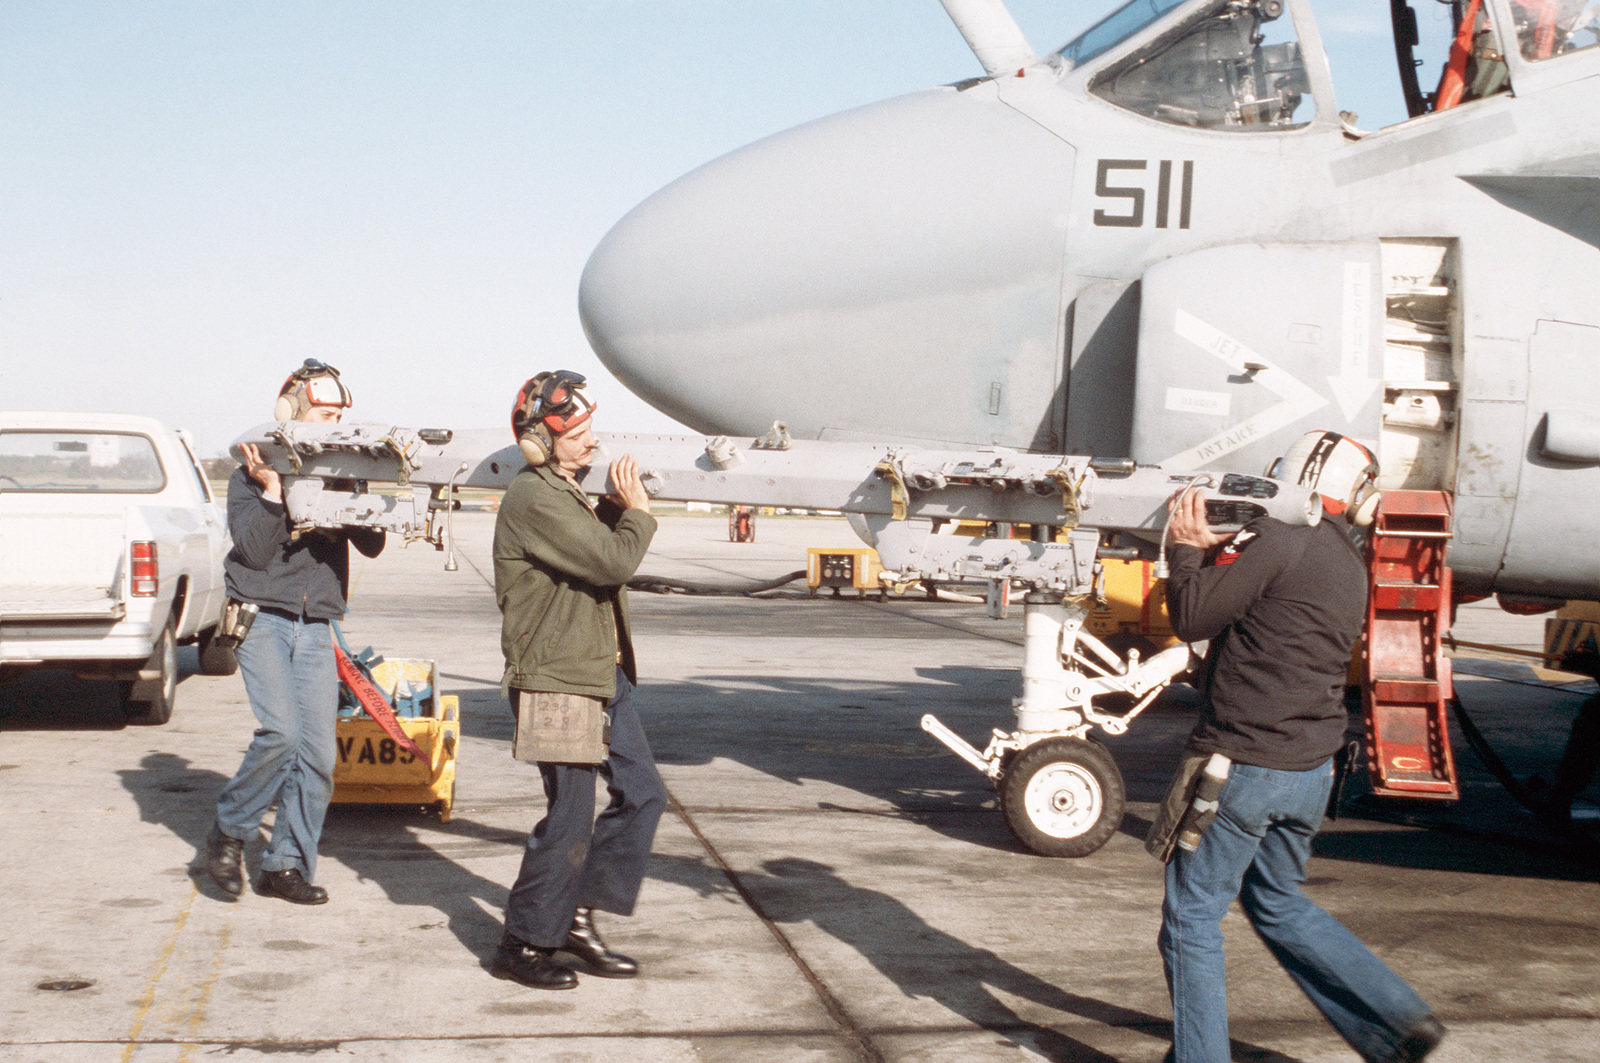 Ground crewmen from Attack Squadron 35 (VA-35) carry a bomb rack to the left wing of one of the Squadron's A-6E Intruder aircraft prior to mounting practice ordnance